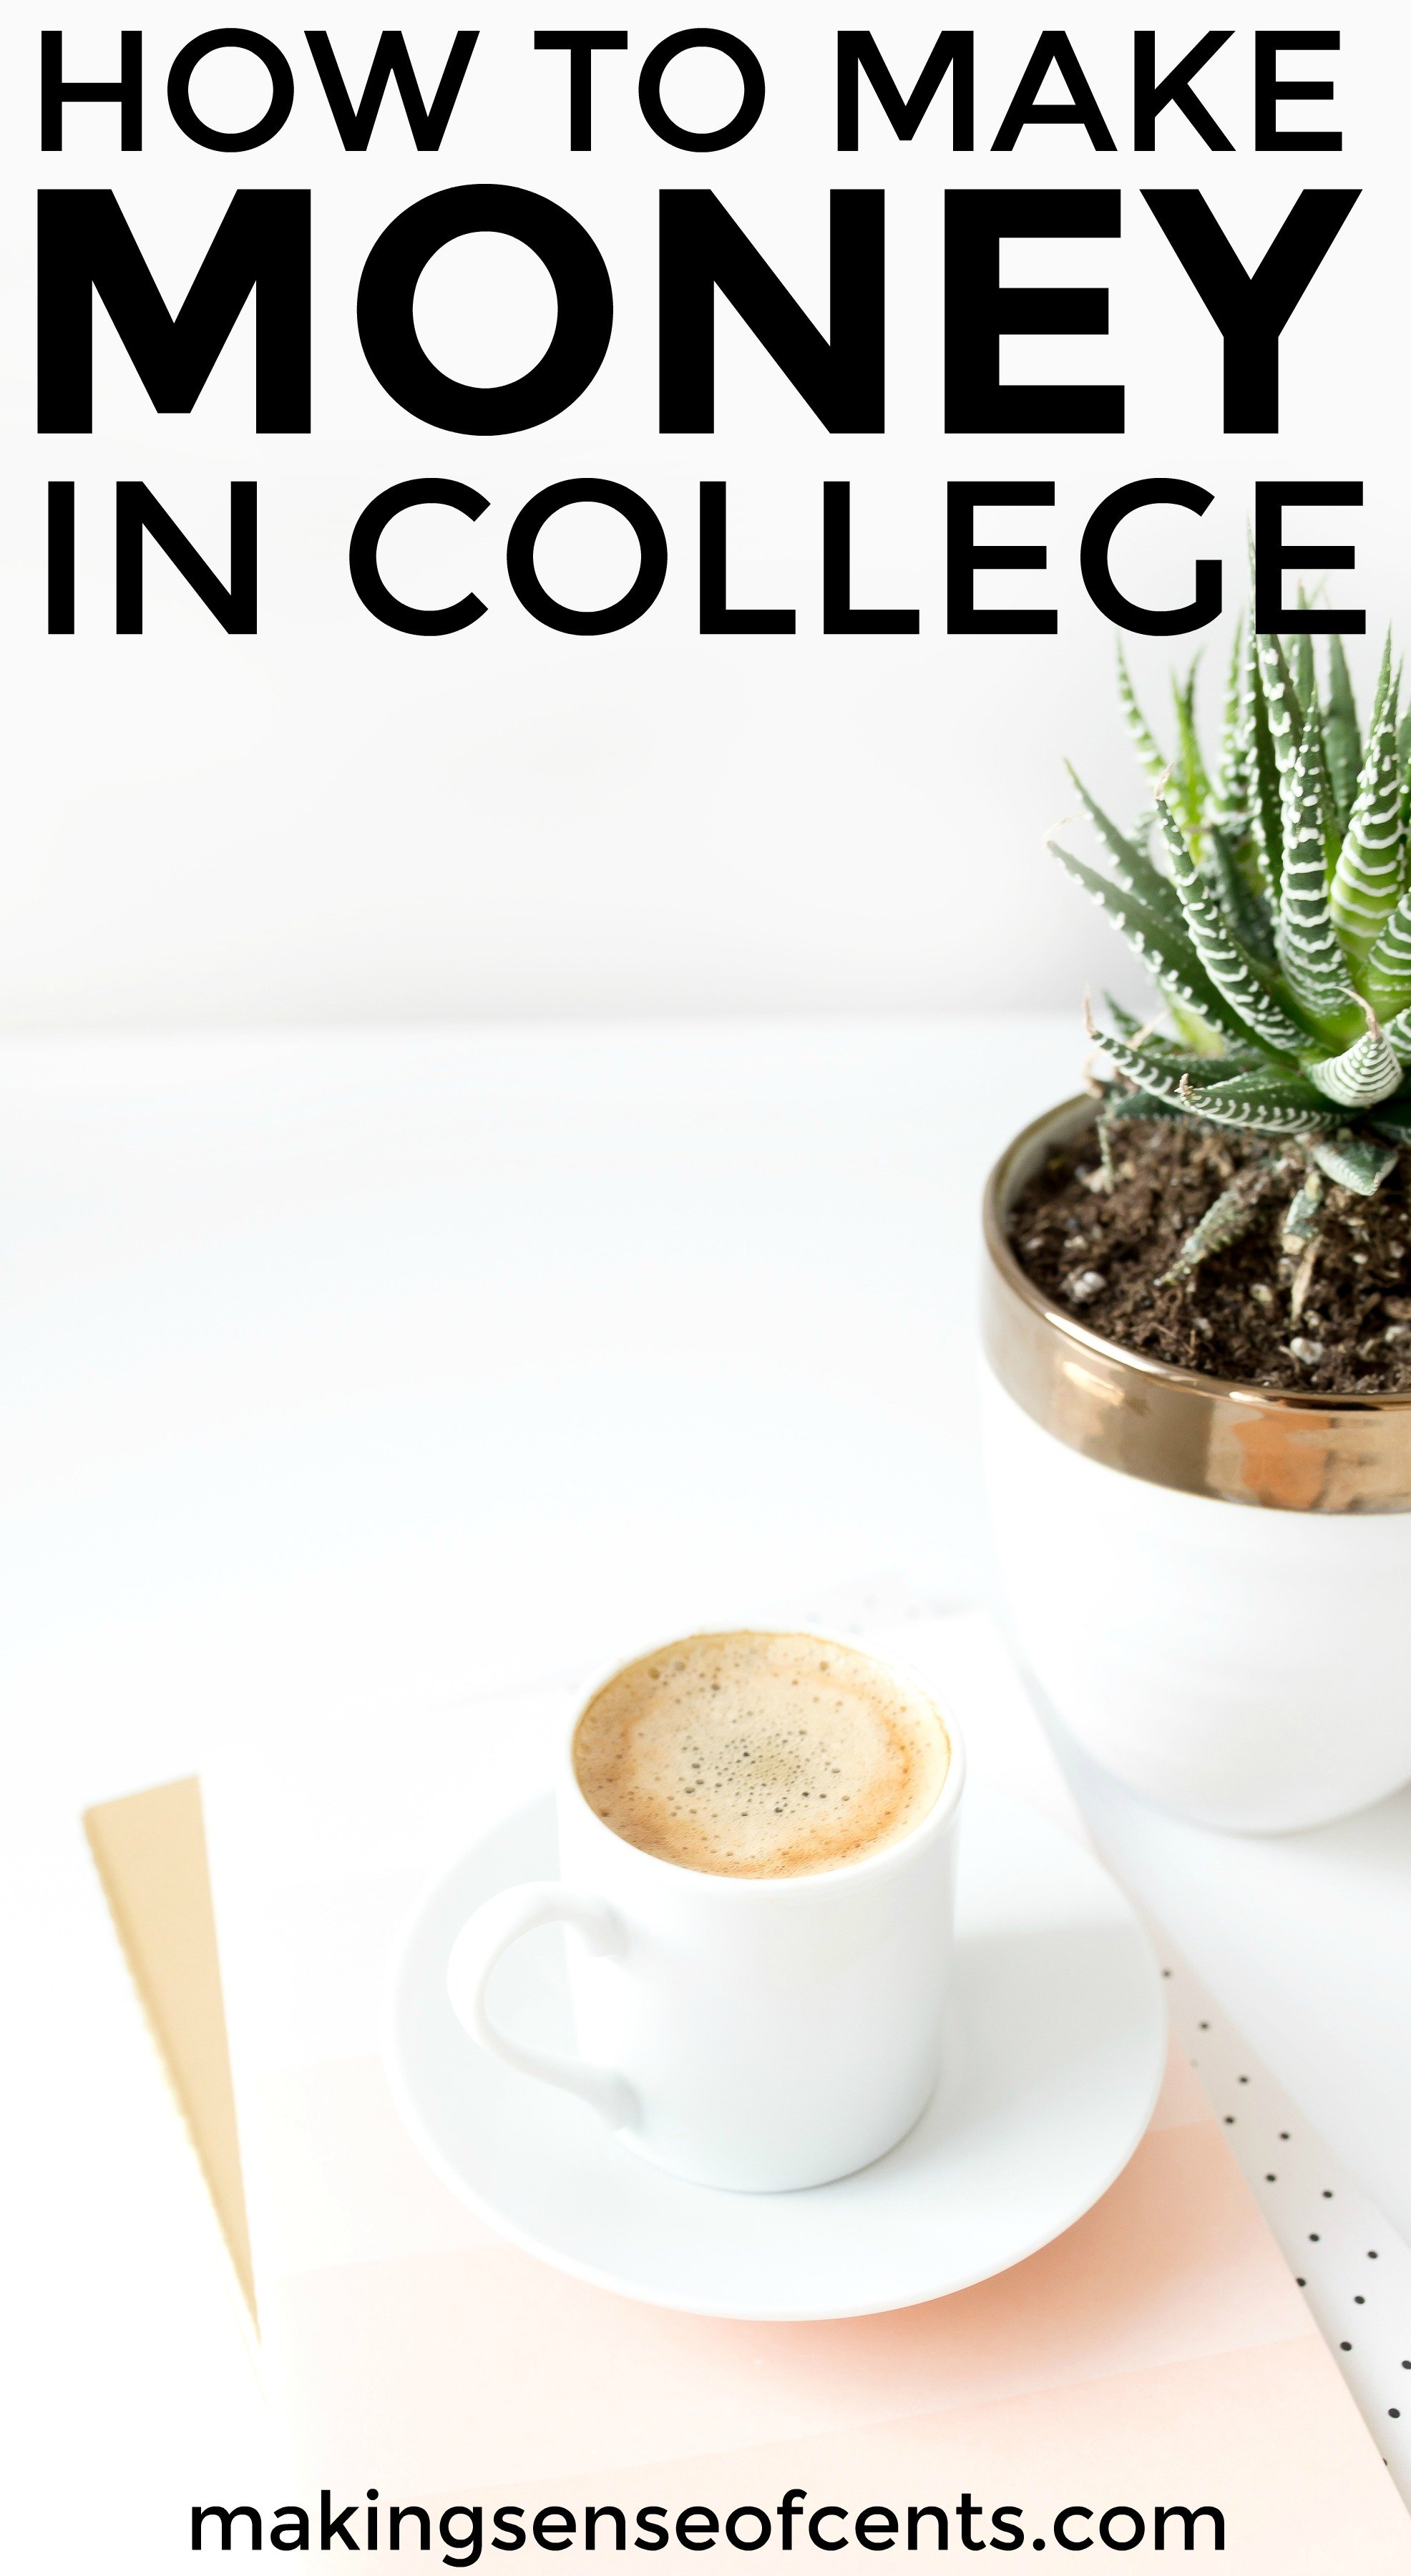 Find out how to make money in college with this helpful list.